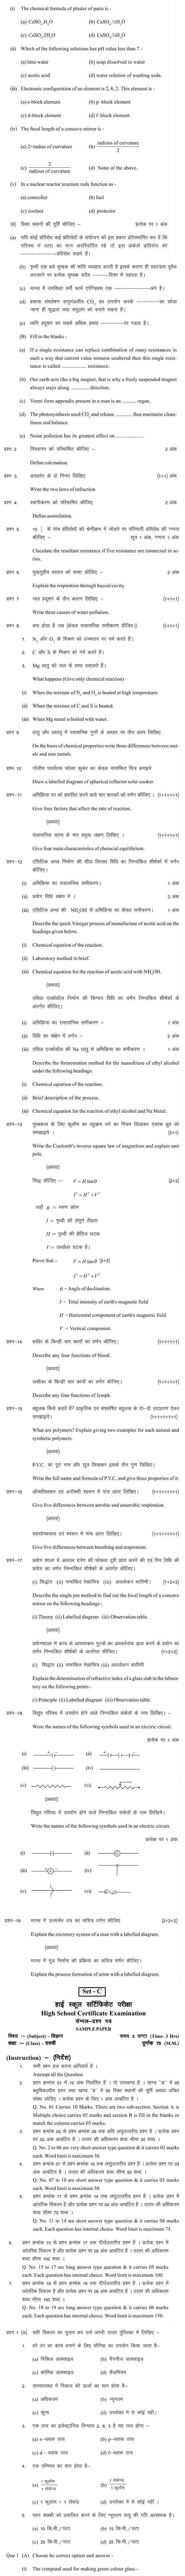 Chattisgarh Board Class 10 Science Sample Paper